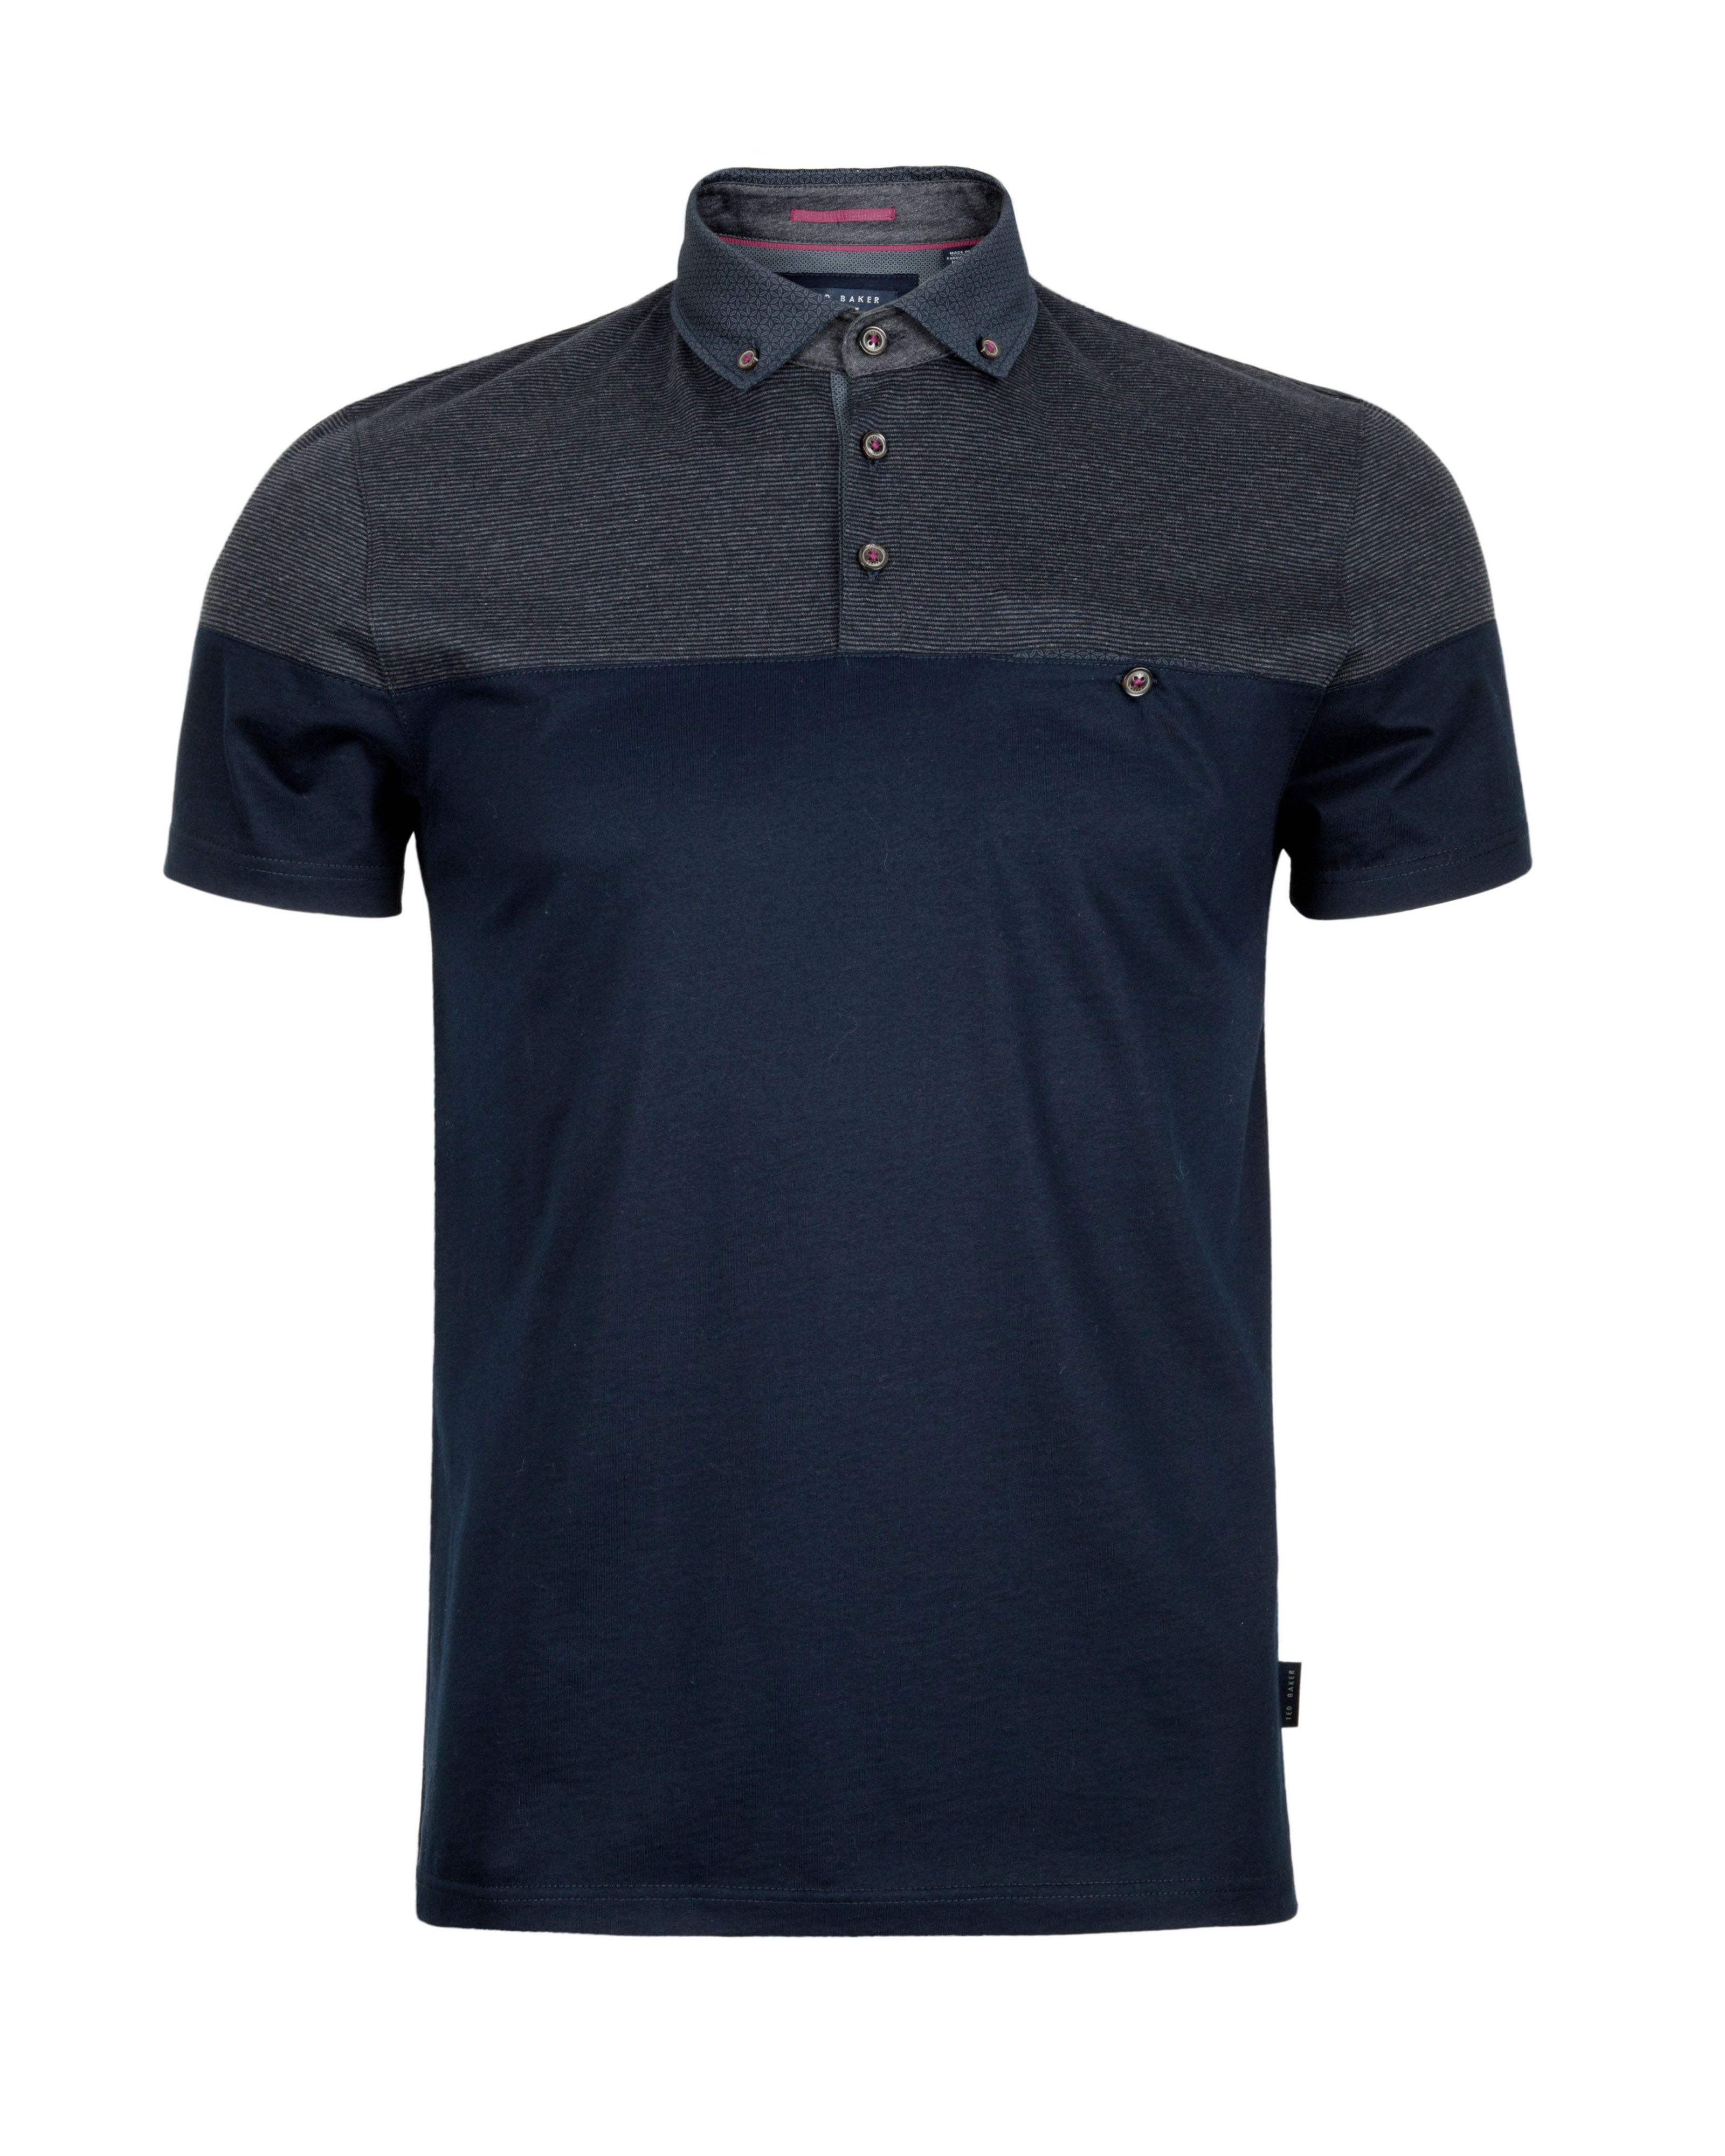 Wookpol panel printed polo shirt